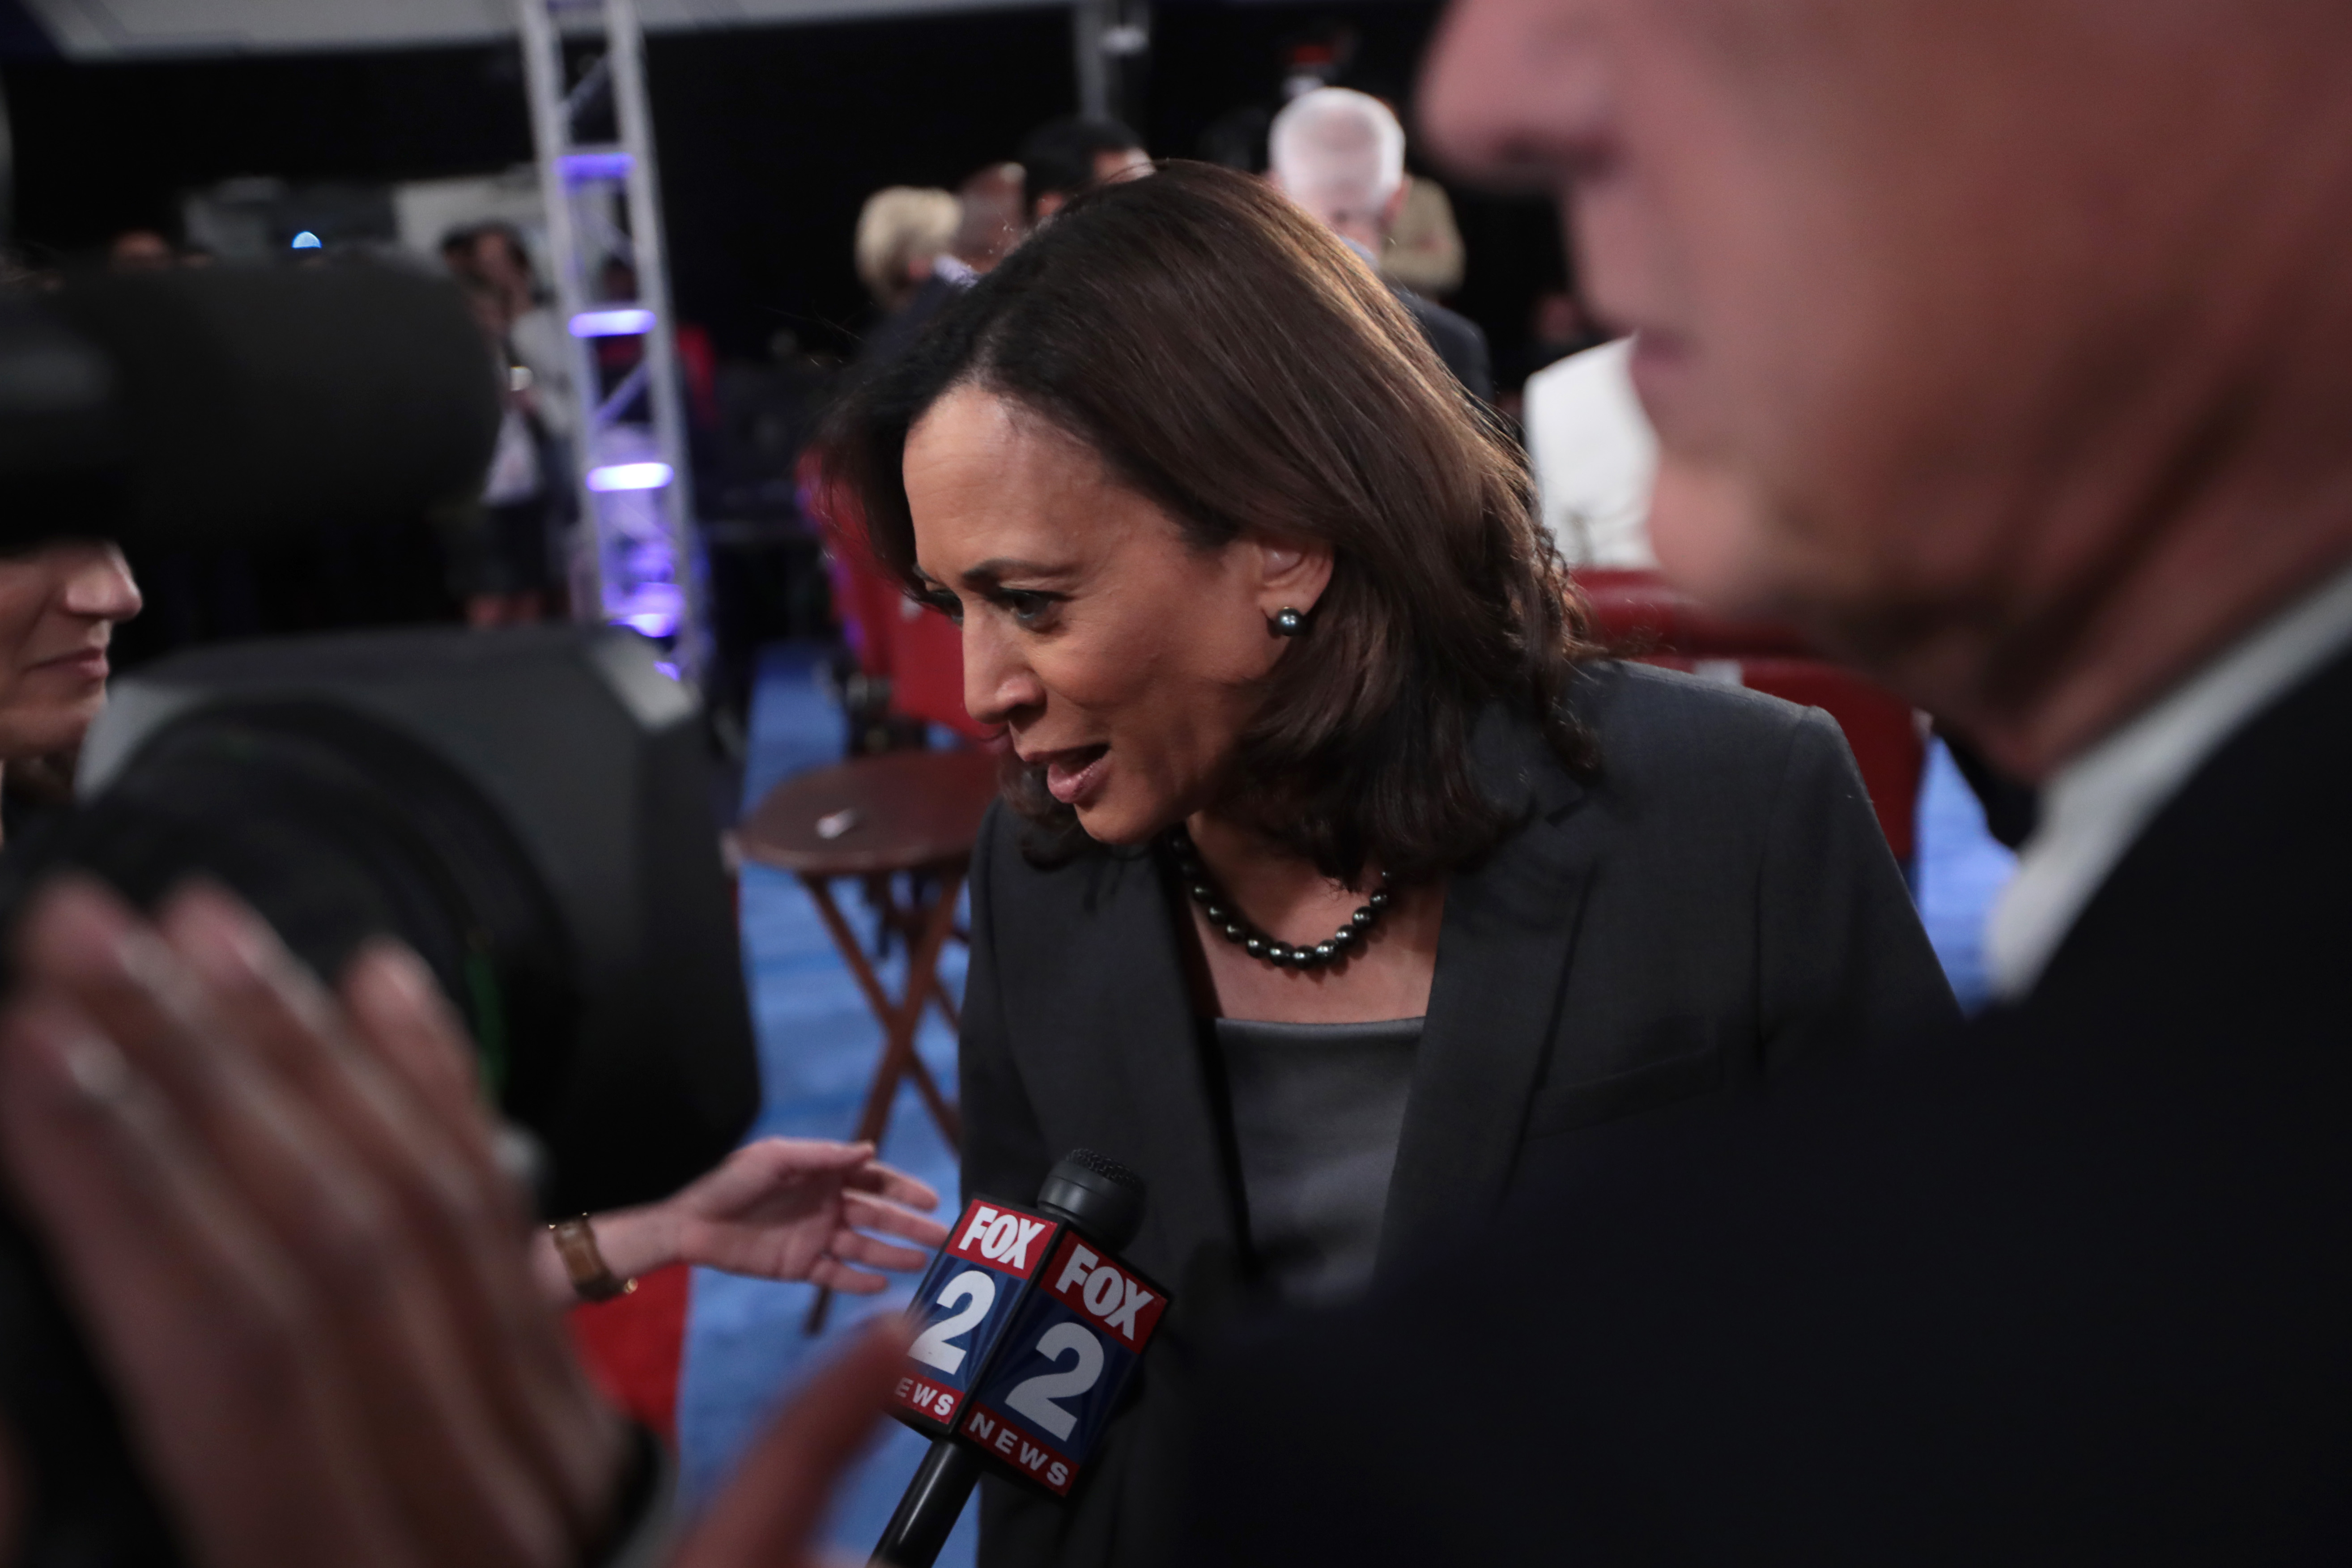 DETROIT, MICHIGAN - JULY 31:  Democratic presidential candidate Sen. Kamala Harris (D-CA) speaks during a television interview in the spin room after the Democratic Presidential Debate at the Fox Theatre July 31, 2019 in Detroit, Michigan. 20 Democratic presidential candidates were split into two groups of 10 to take part in the debate sponsored by CNN held over two nights at Detroit's Fox Theatre.  (Photo by Scott Olson/Getty Images)